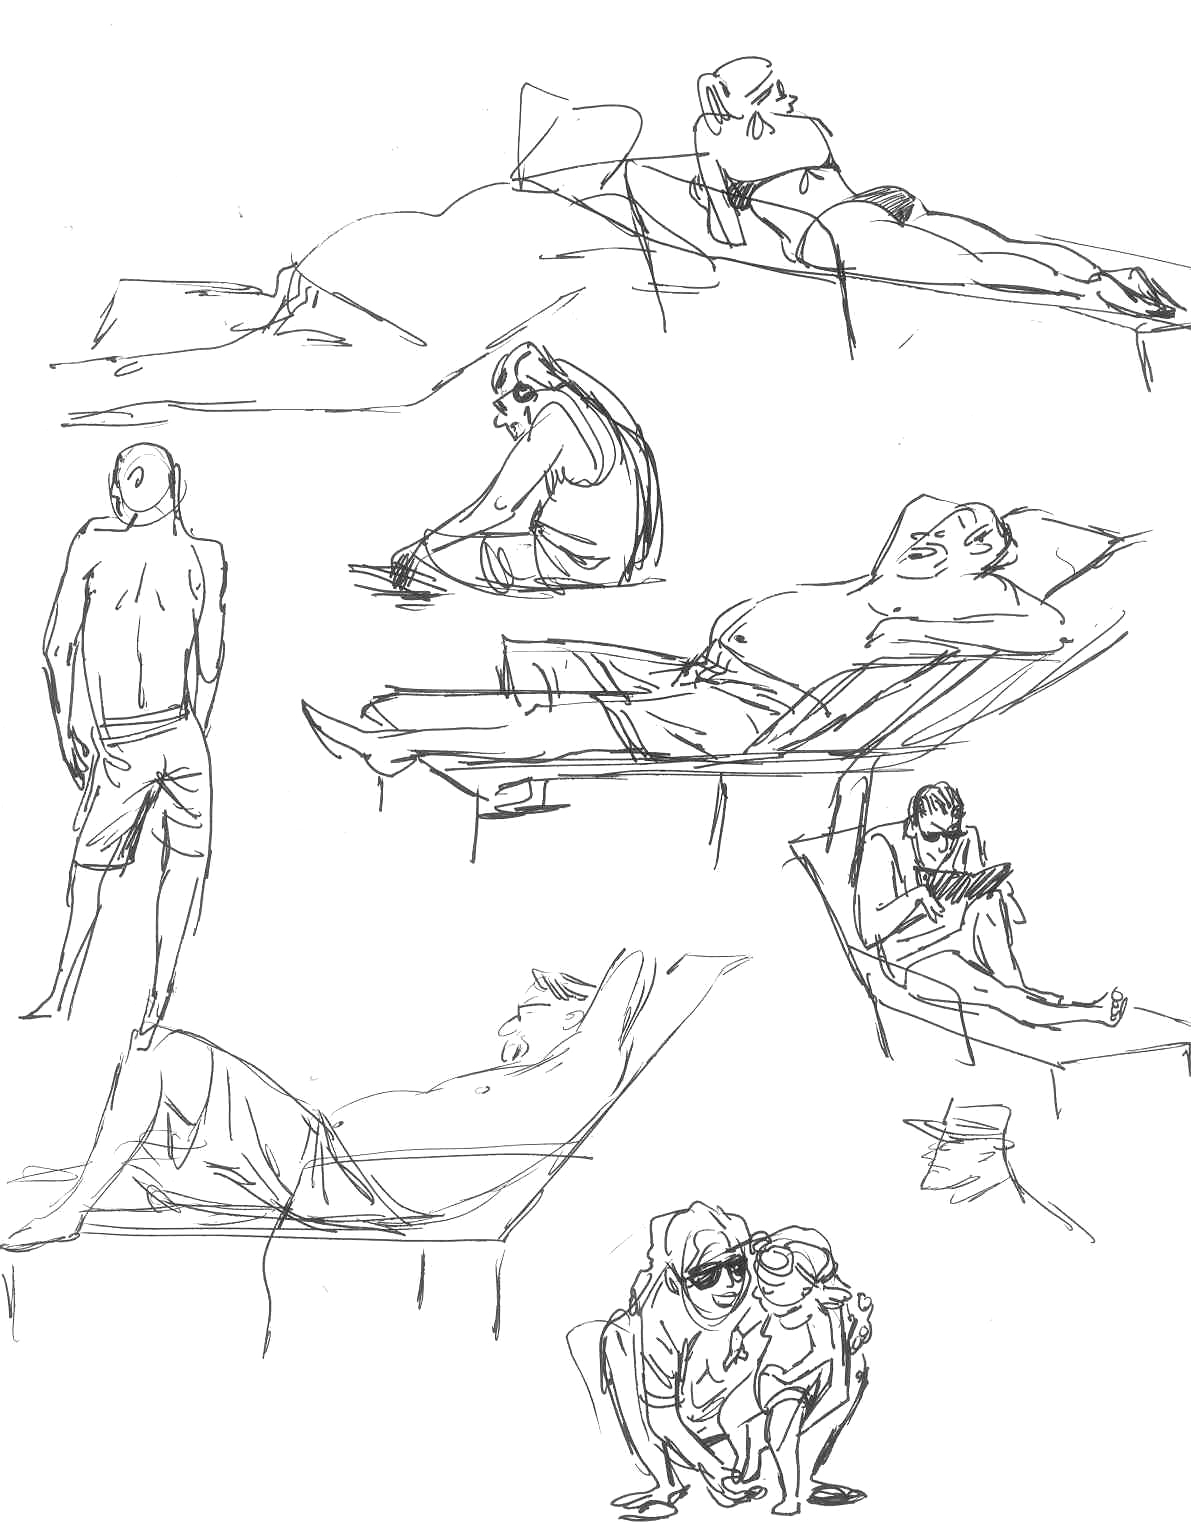 Terry song yet even more swimming pool sketches for Swimming pool sketch